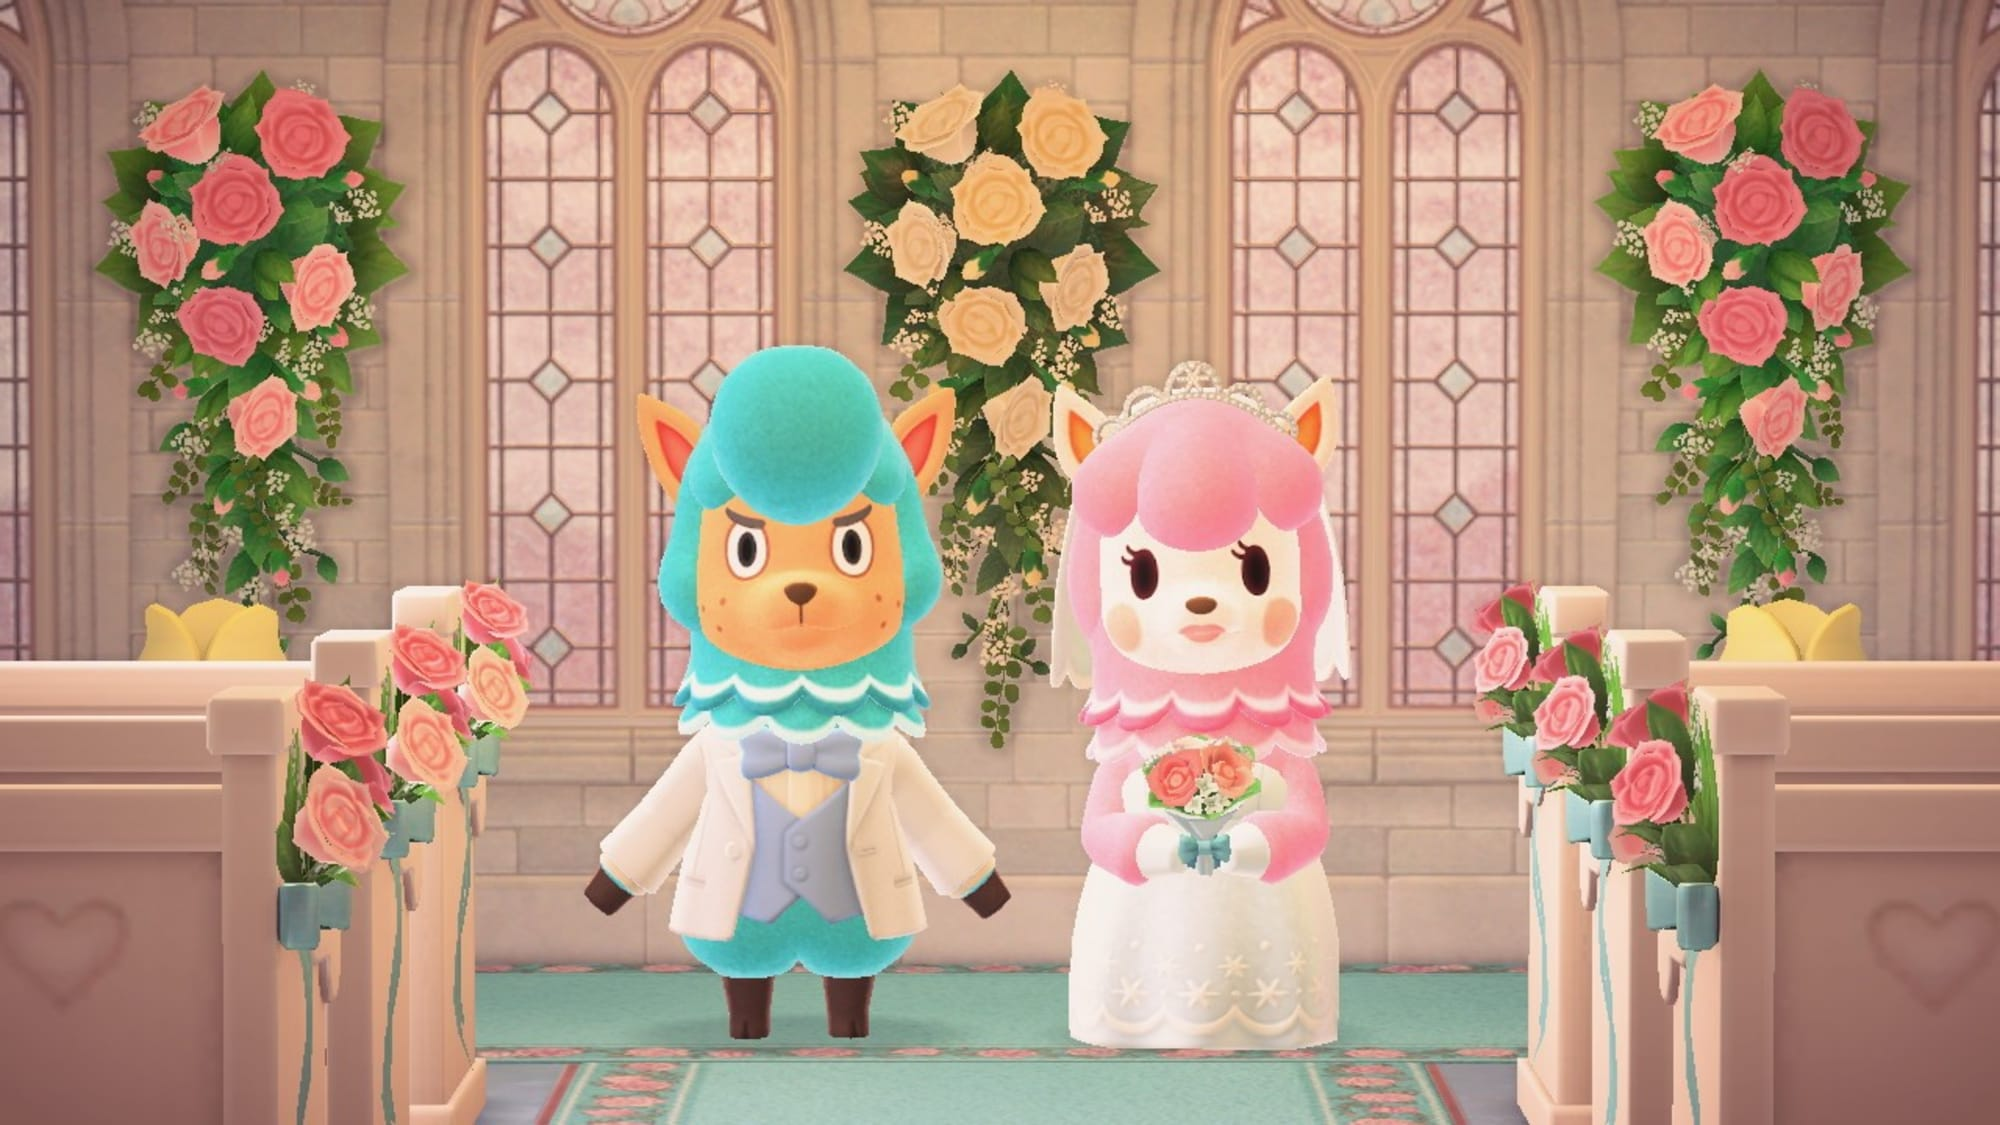 Animal Crossing: New Horizons: Wedding photography event has a special surprise